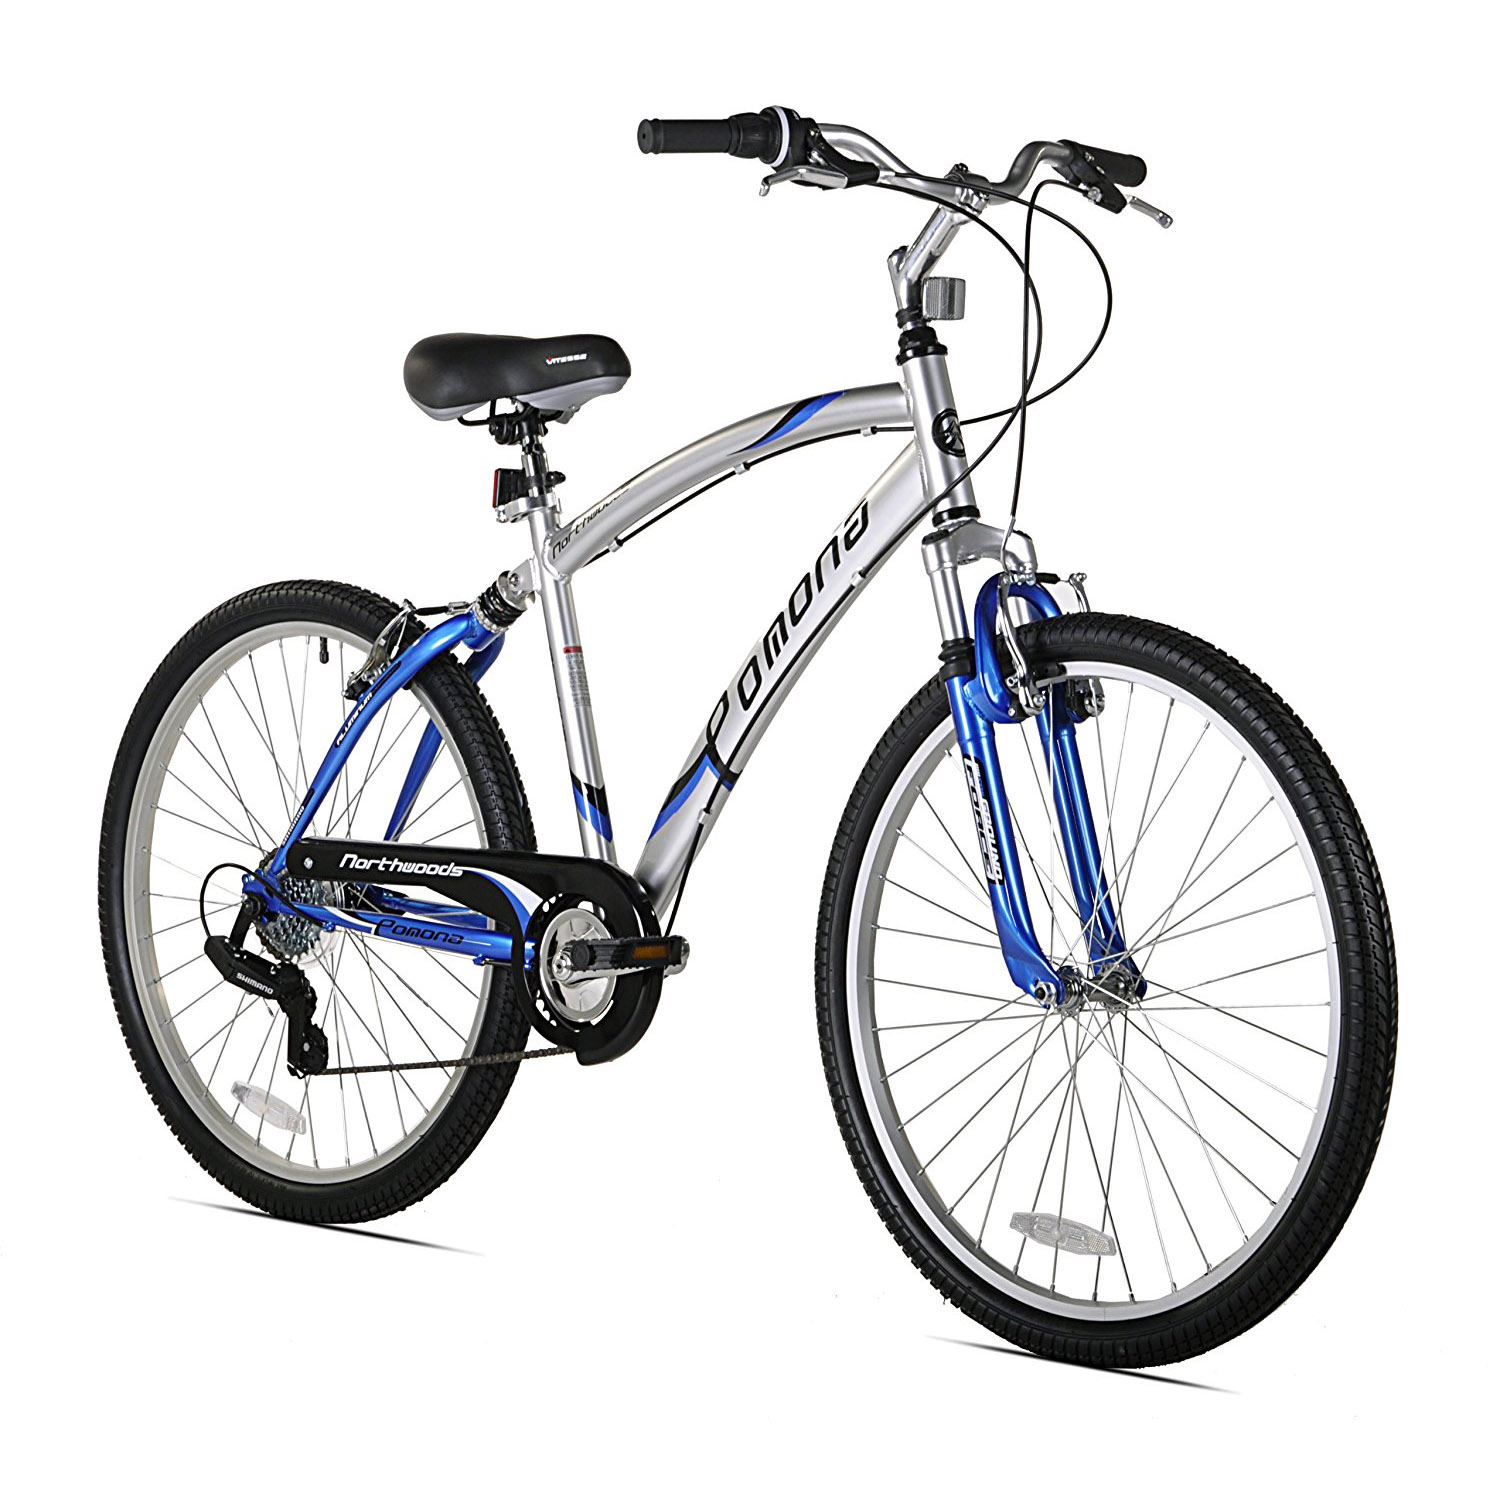 Northwoods - Pomona Men's Cruiser Bicycle, 26-Inch